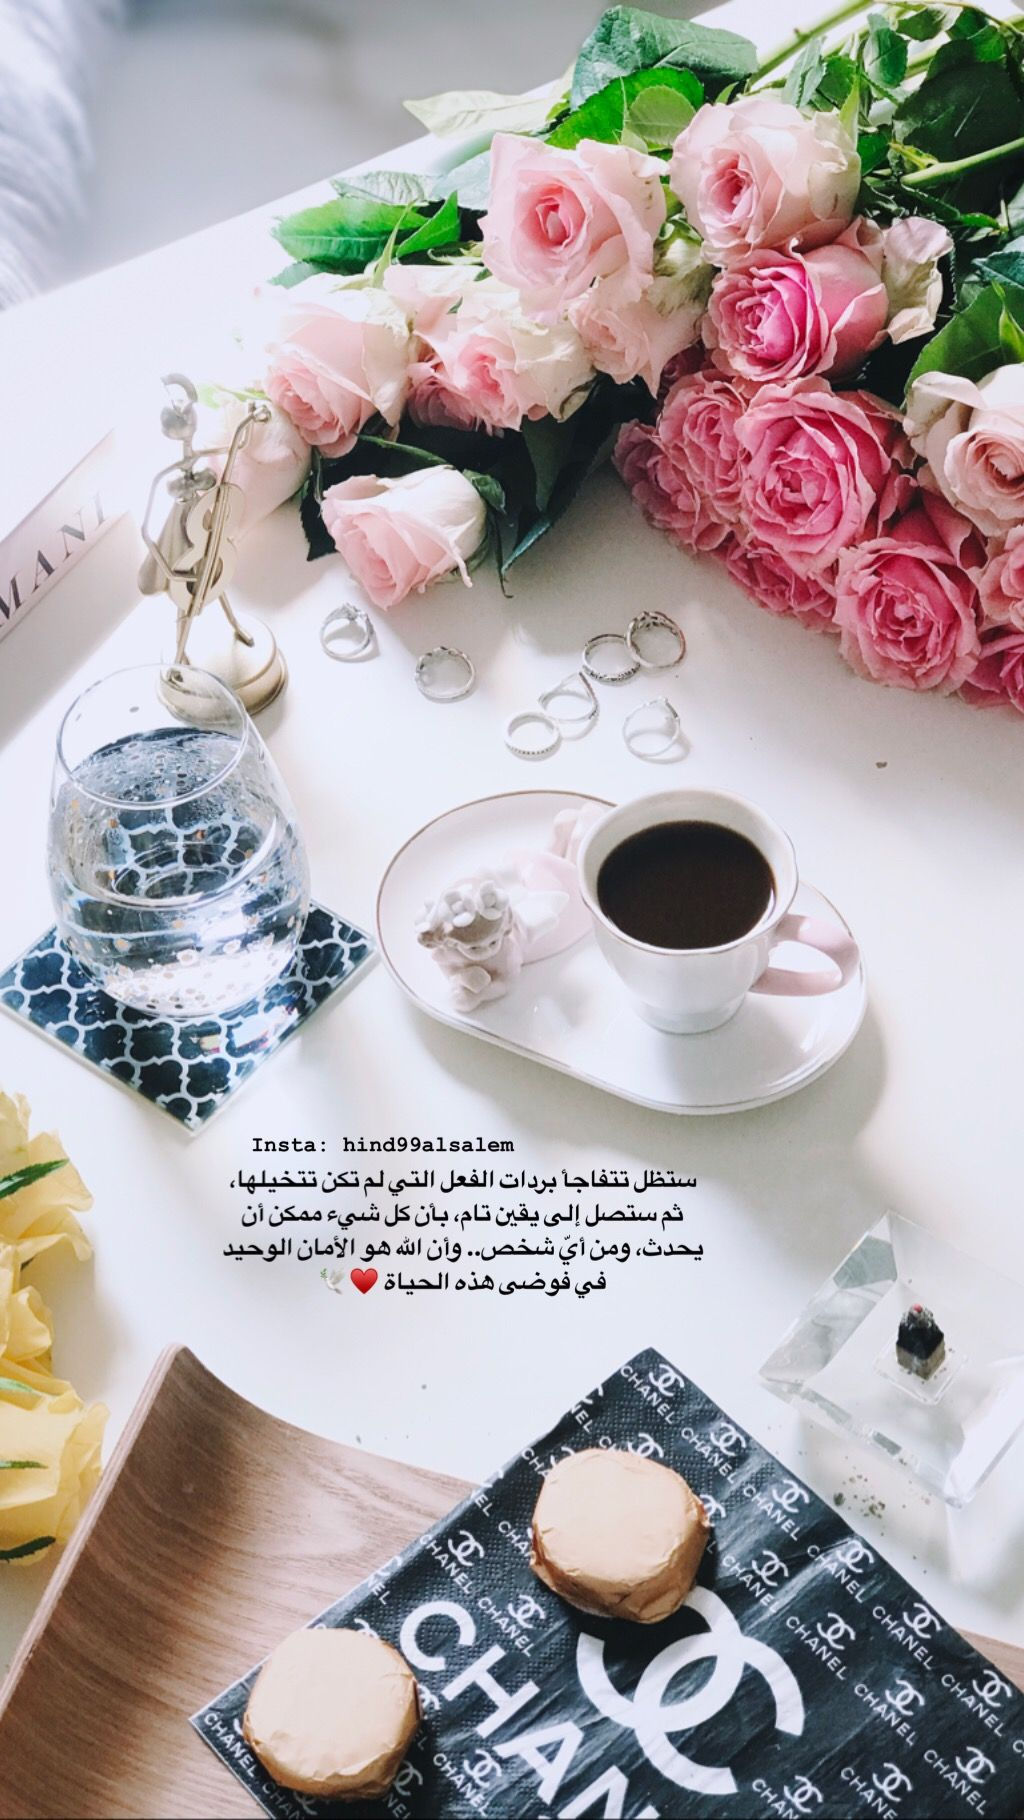 Pin By Hindalsalem 𓆩 𓆪 هند السالم On M In 2021 Photo Quotes Arabic Quotes Arabic Words